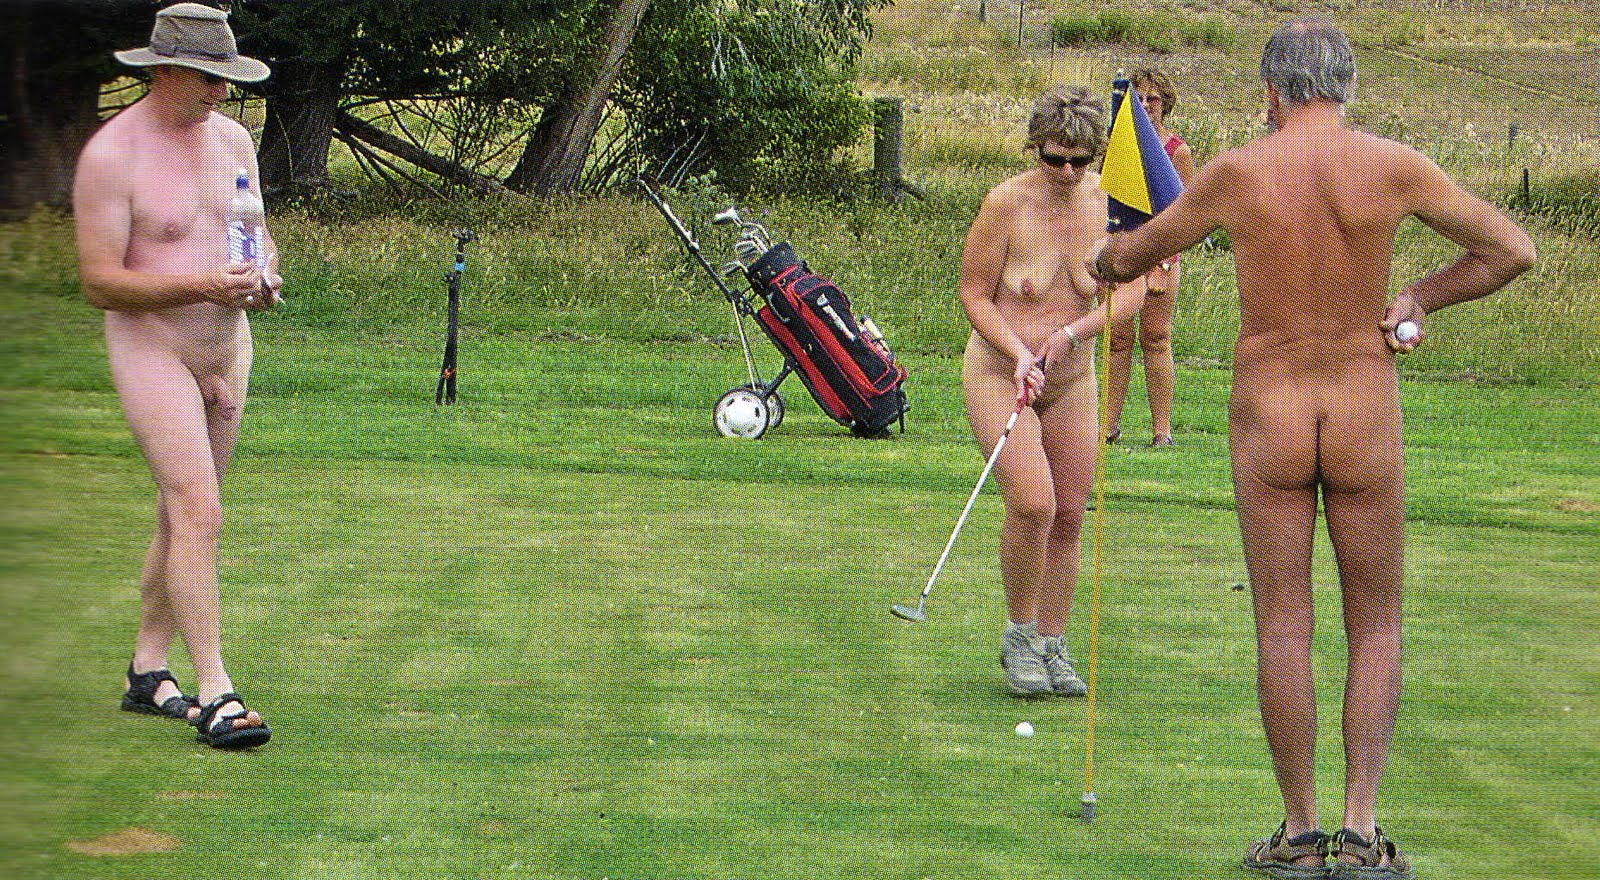 naked-women-on-the-golf-course-nood-girls-photo